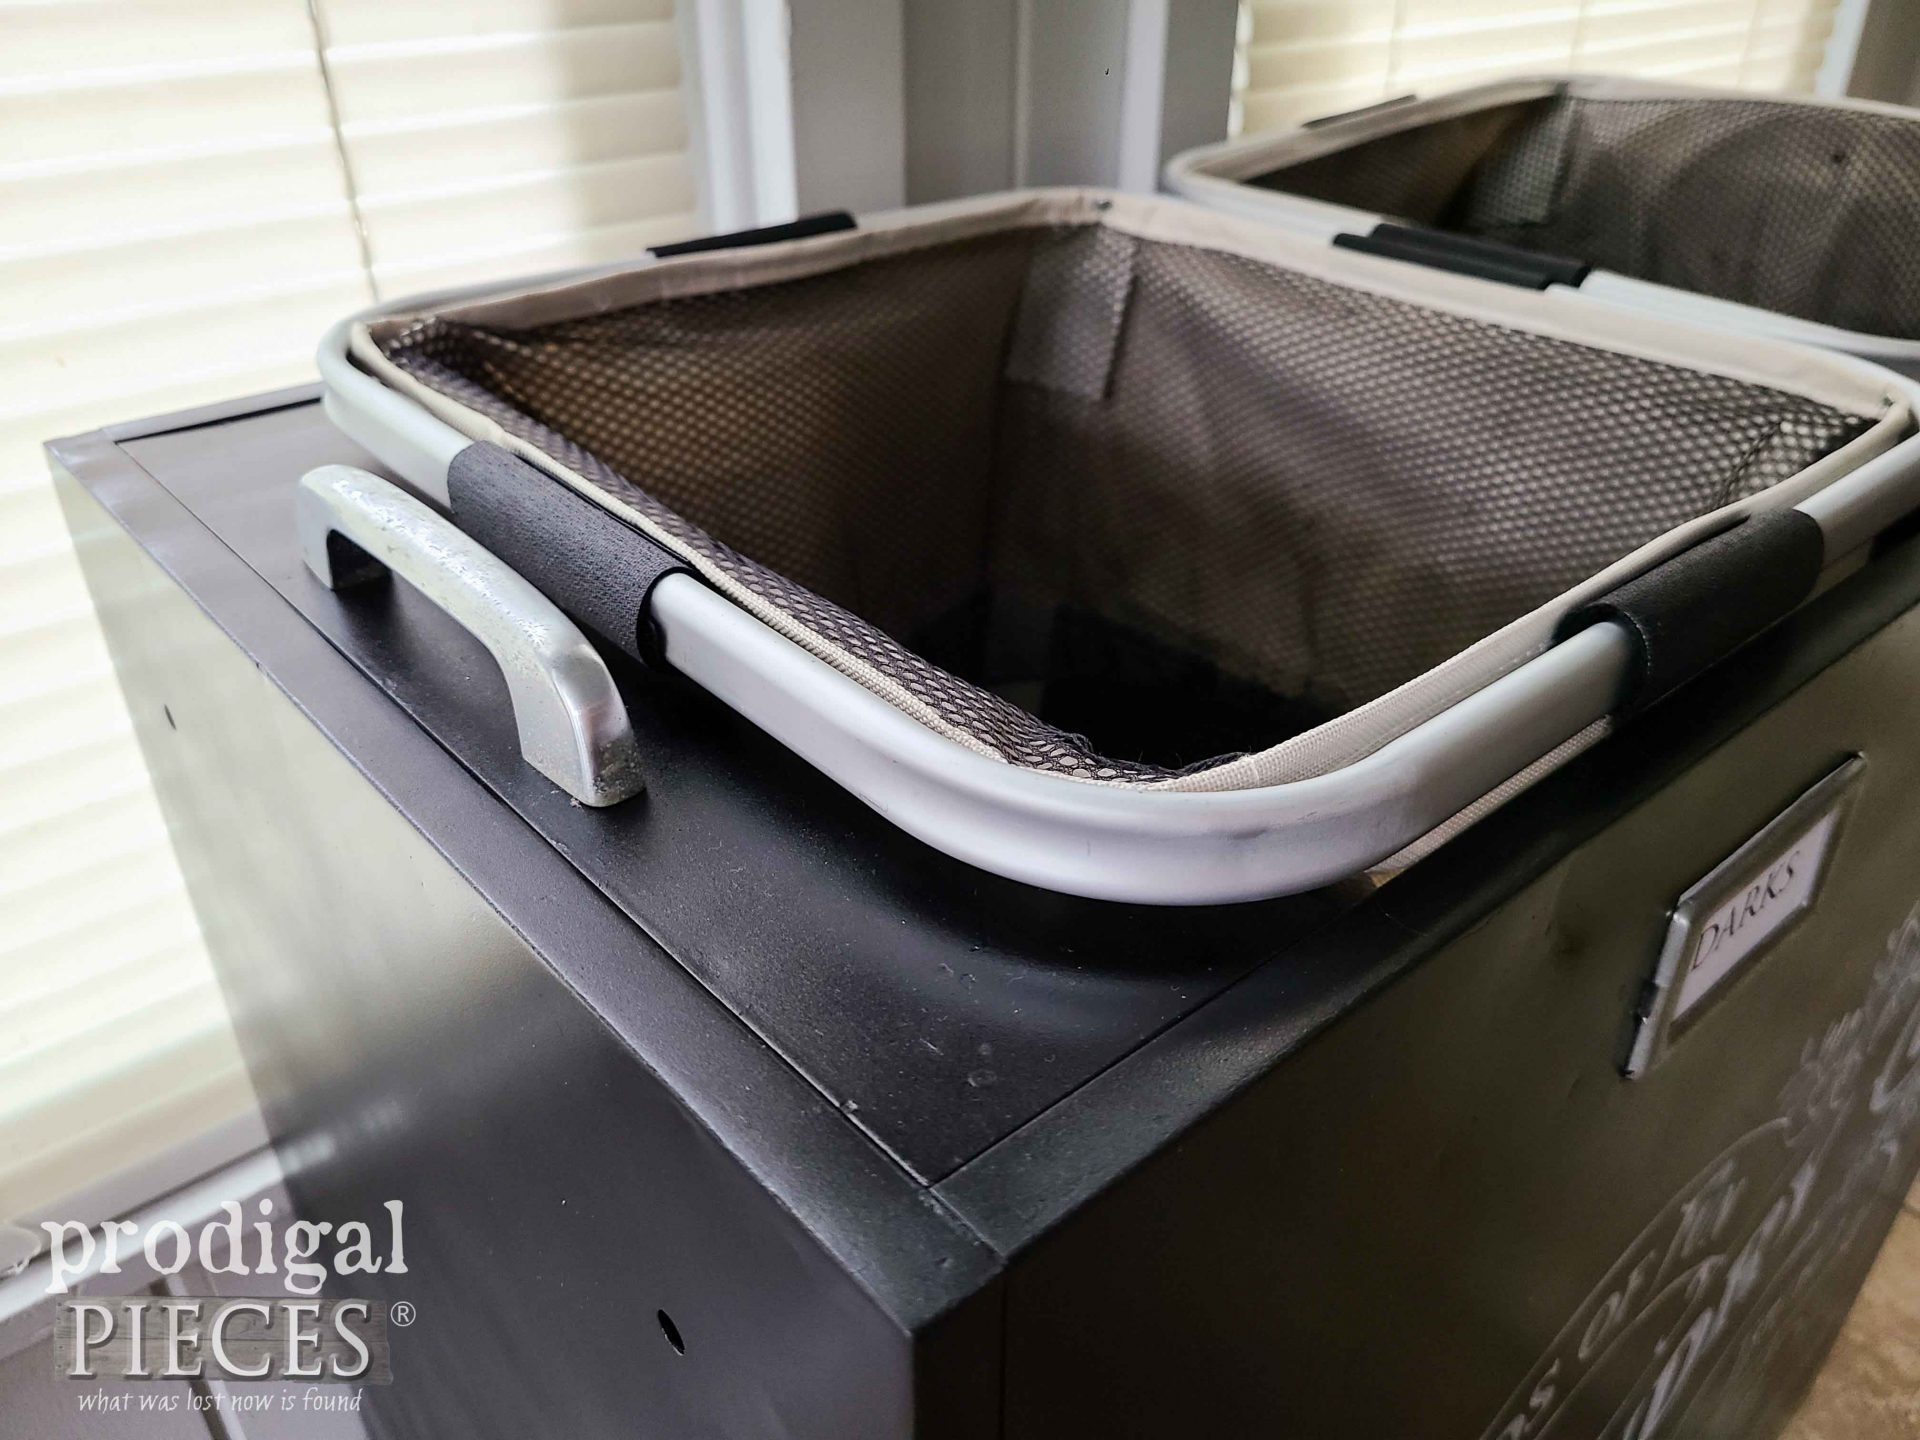 Upcycled Filing Cabinet Drawer Pull on Portable Laundry Bin by Larissa of Prodigal Pieces   prodigalpieces.com #prodigalpieces #repurposed #laundry #diy